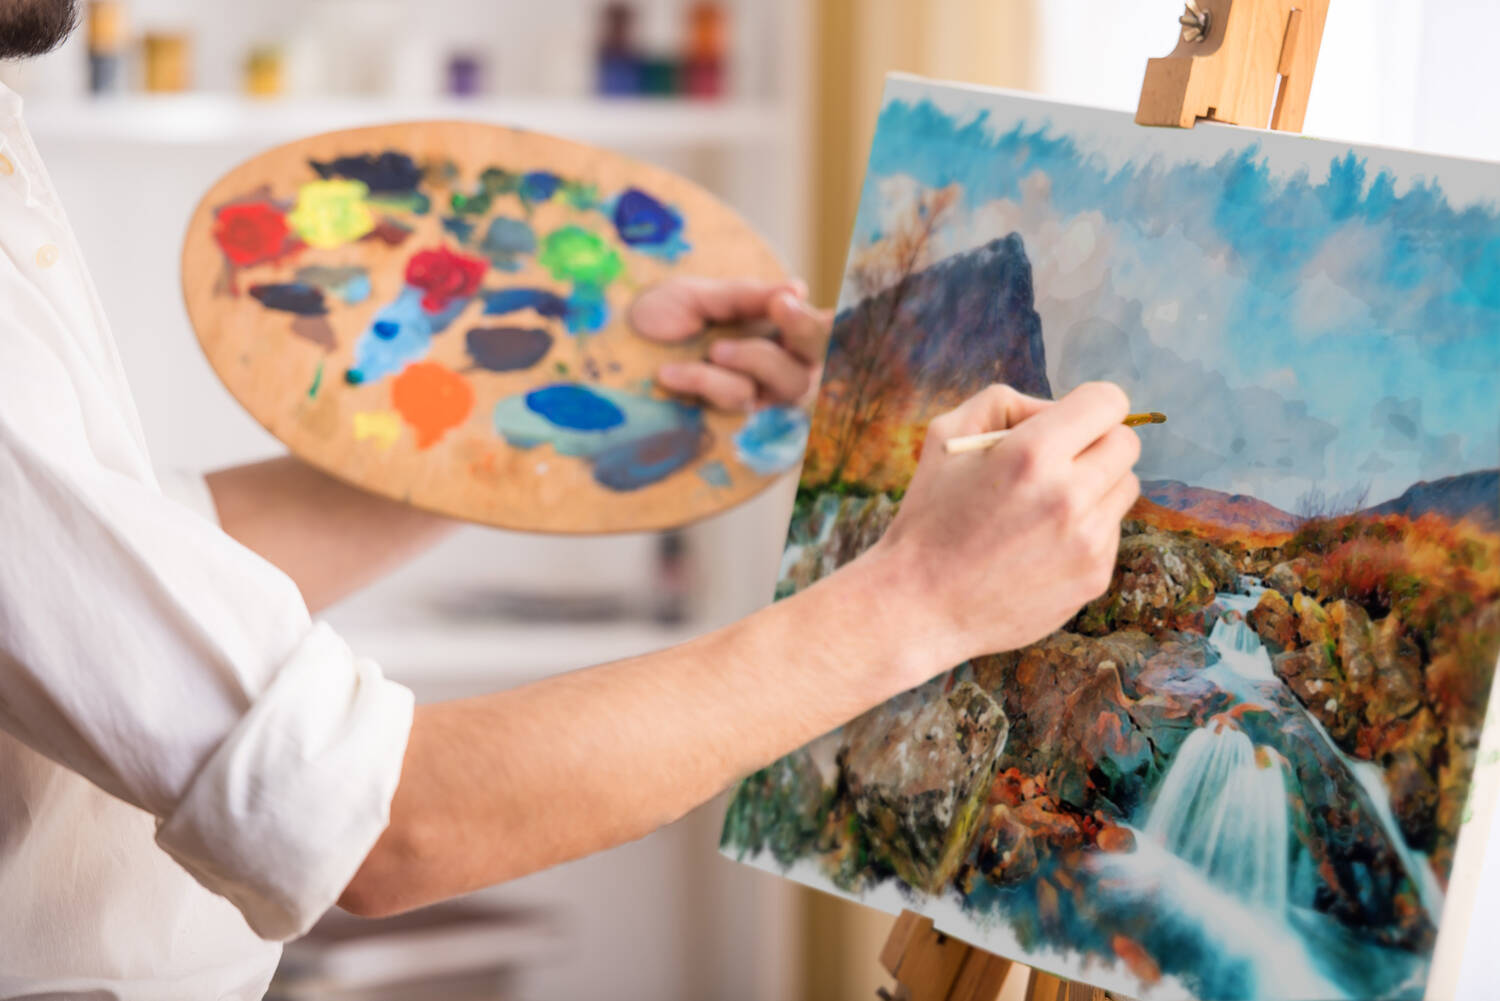 An artist holding a palette full of brightly coloured paint, painting a landscape scene on an easel.